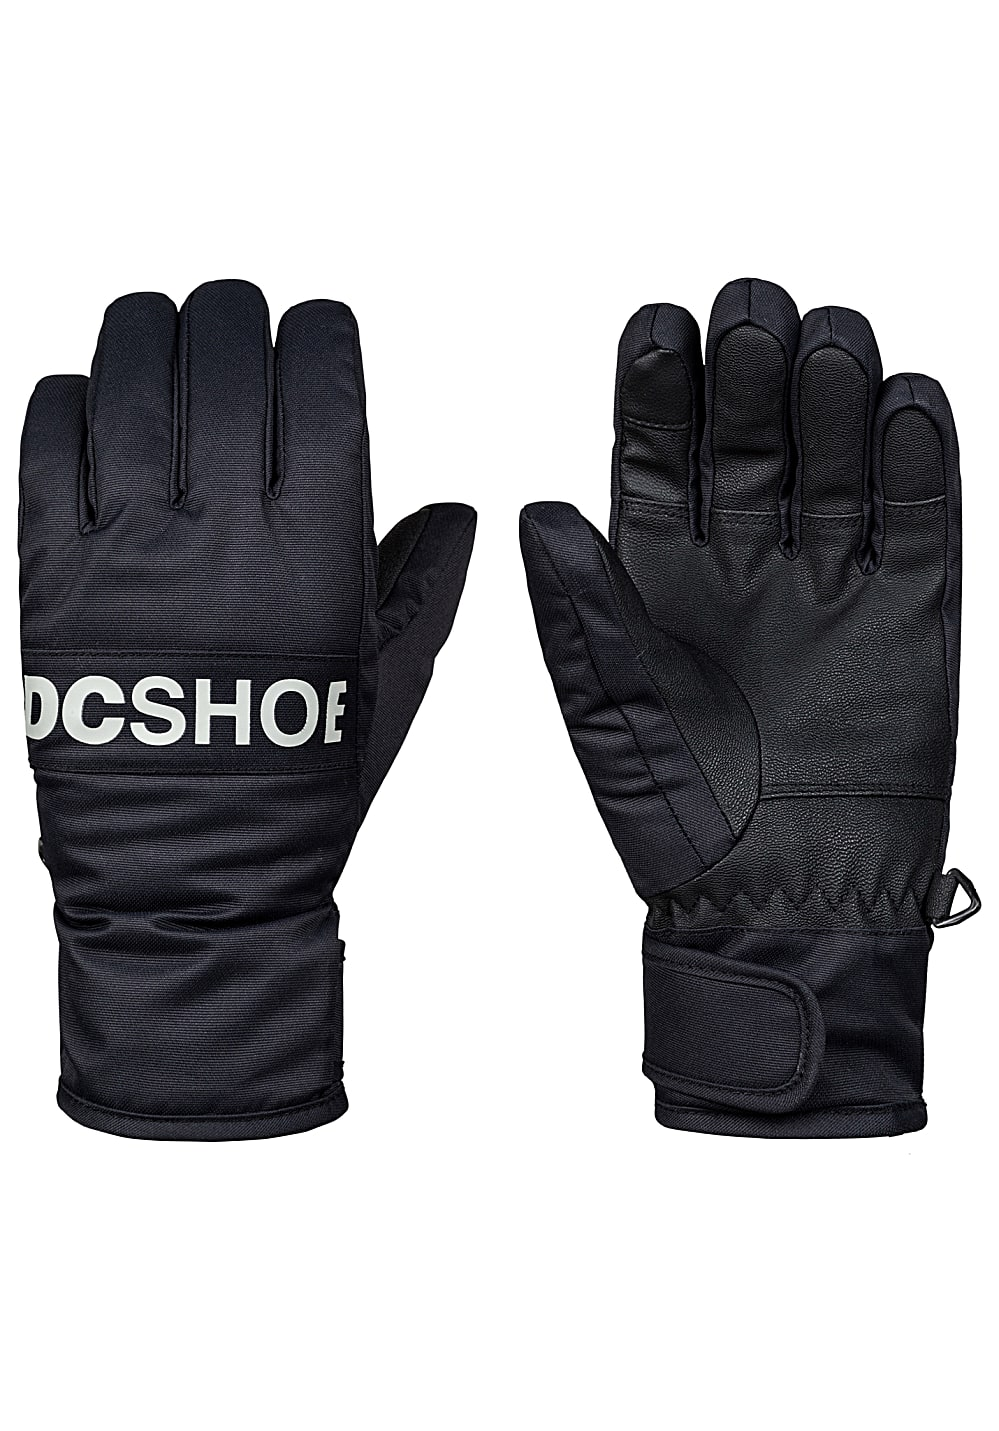 Boysaccessoires - DC Franchise Snowboard Handschuhe Schwarz - Onlineshop Planet Sports